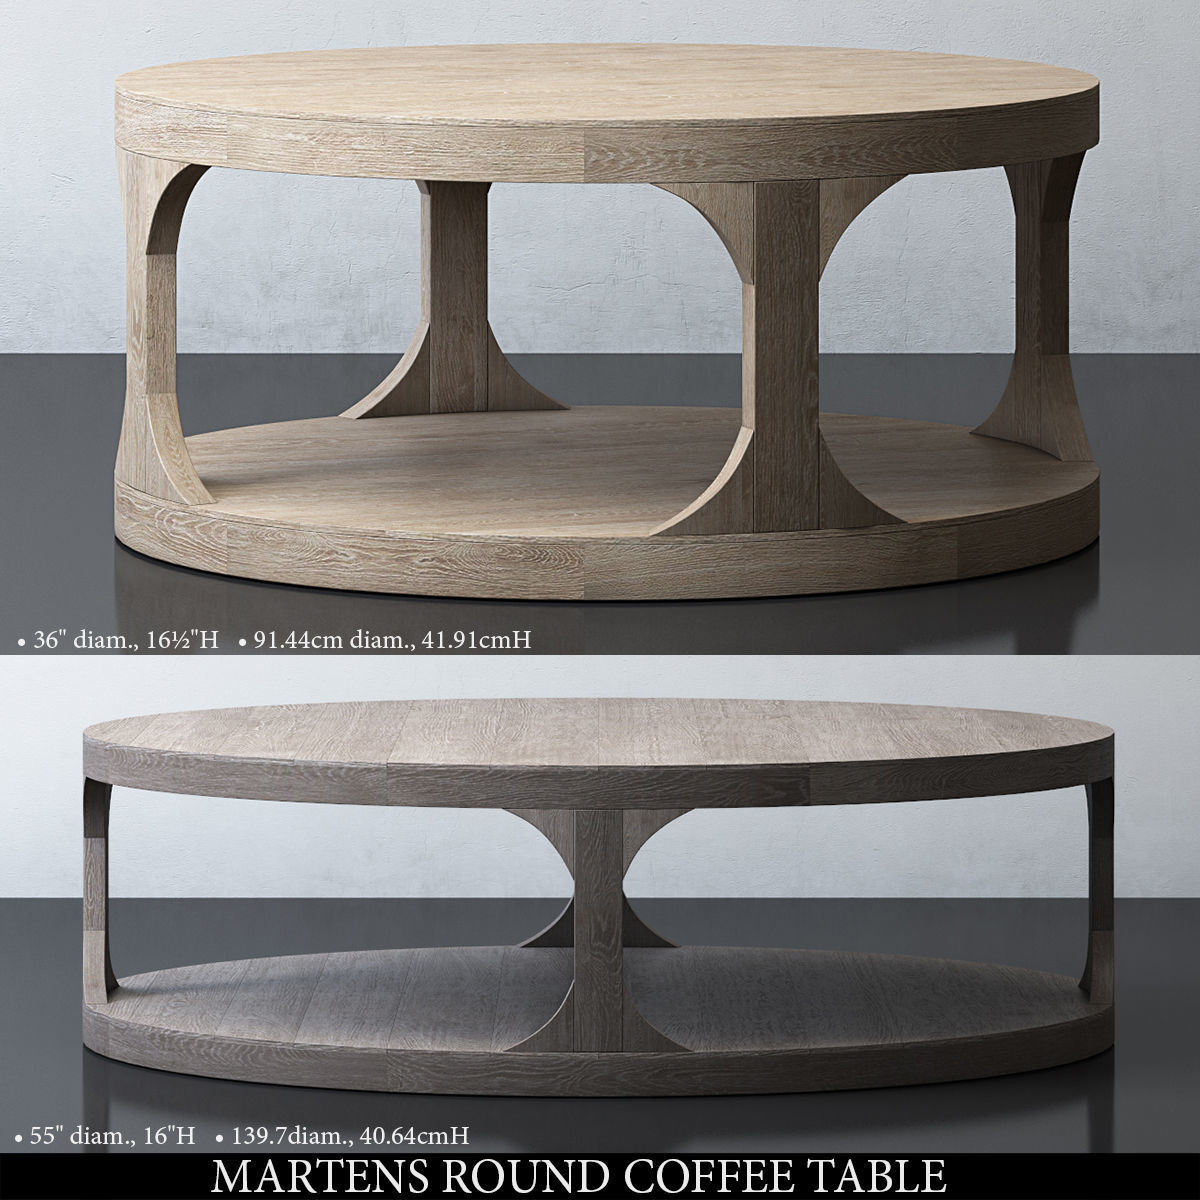 Martens Round Coffee Table Restoration Hardware 36 Inch: MARTENS ROUND COFFEE TABLE 3D Model